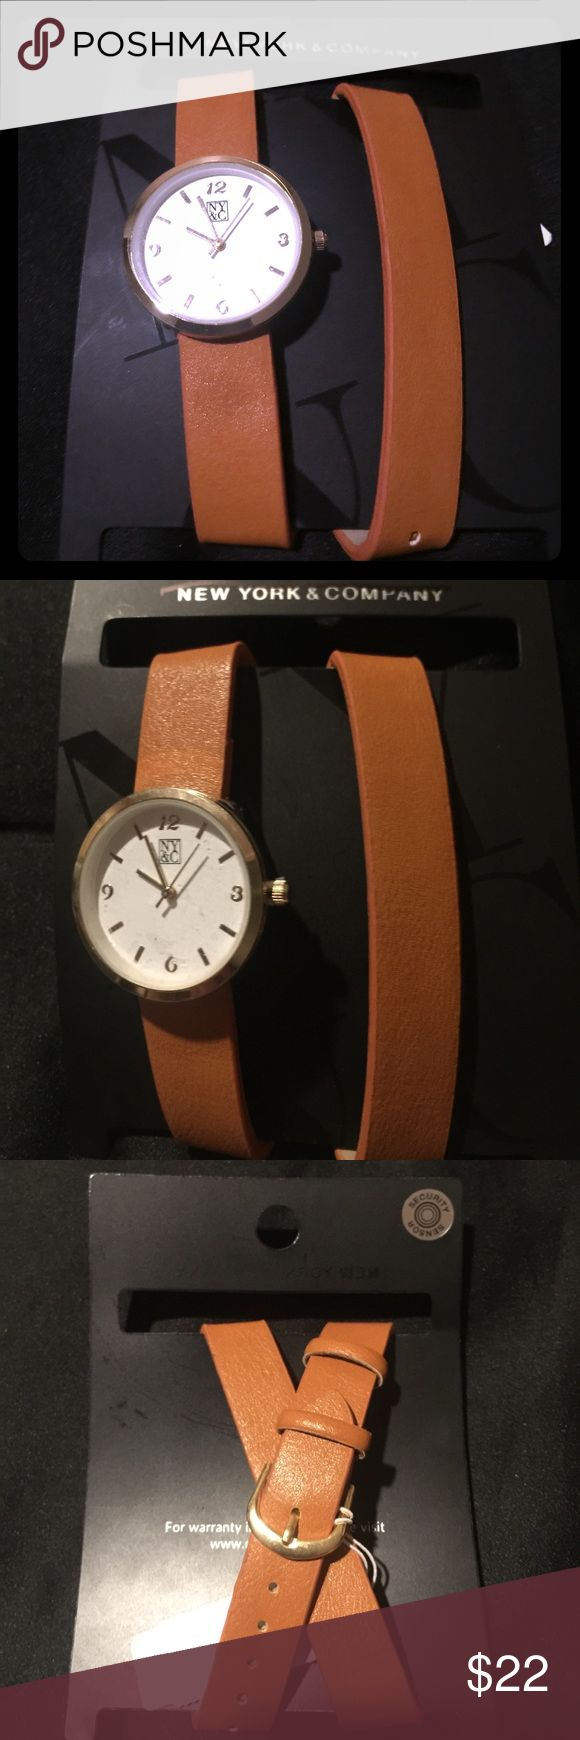 Unique New York & Company Crossed Leather Watch Temporary price cut! Bundle and save! New! Discounted pricing is possible by purchasing straight through the Warehouse. A very Unique Women's watch with crossed genuine leather straps from New York & Company. I love the way this looks on my girlfriend! I even bought one for her myself! She LOVES it! Available in a mocha brown and night black. Authentic Leather and stainless steel.   !!MAKE AN OFFER, don't be shy!! (Prices negotiable on most…